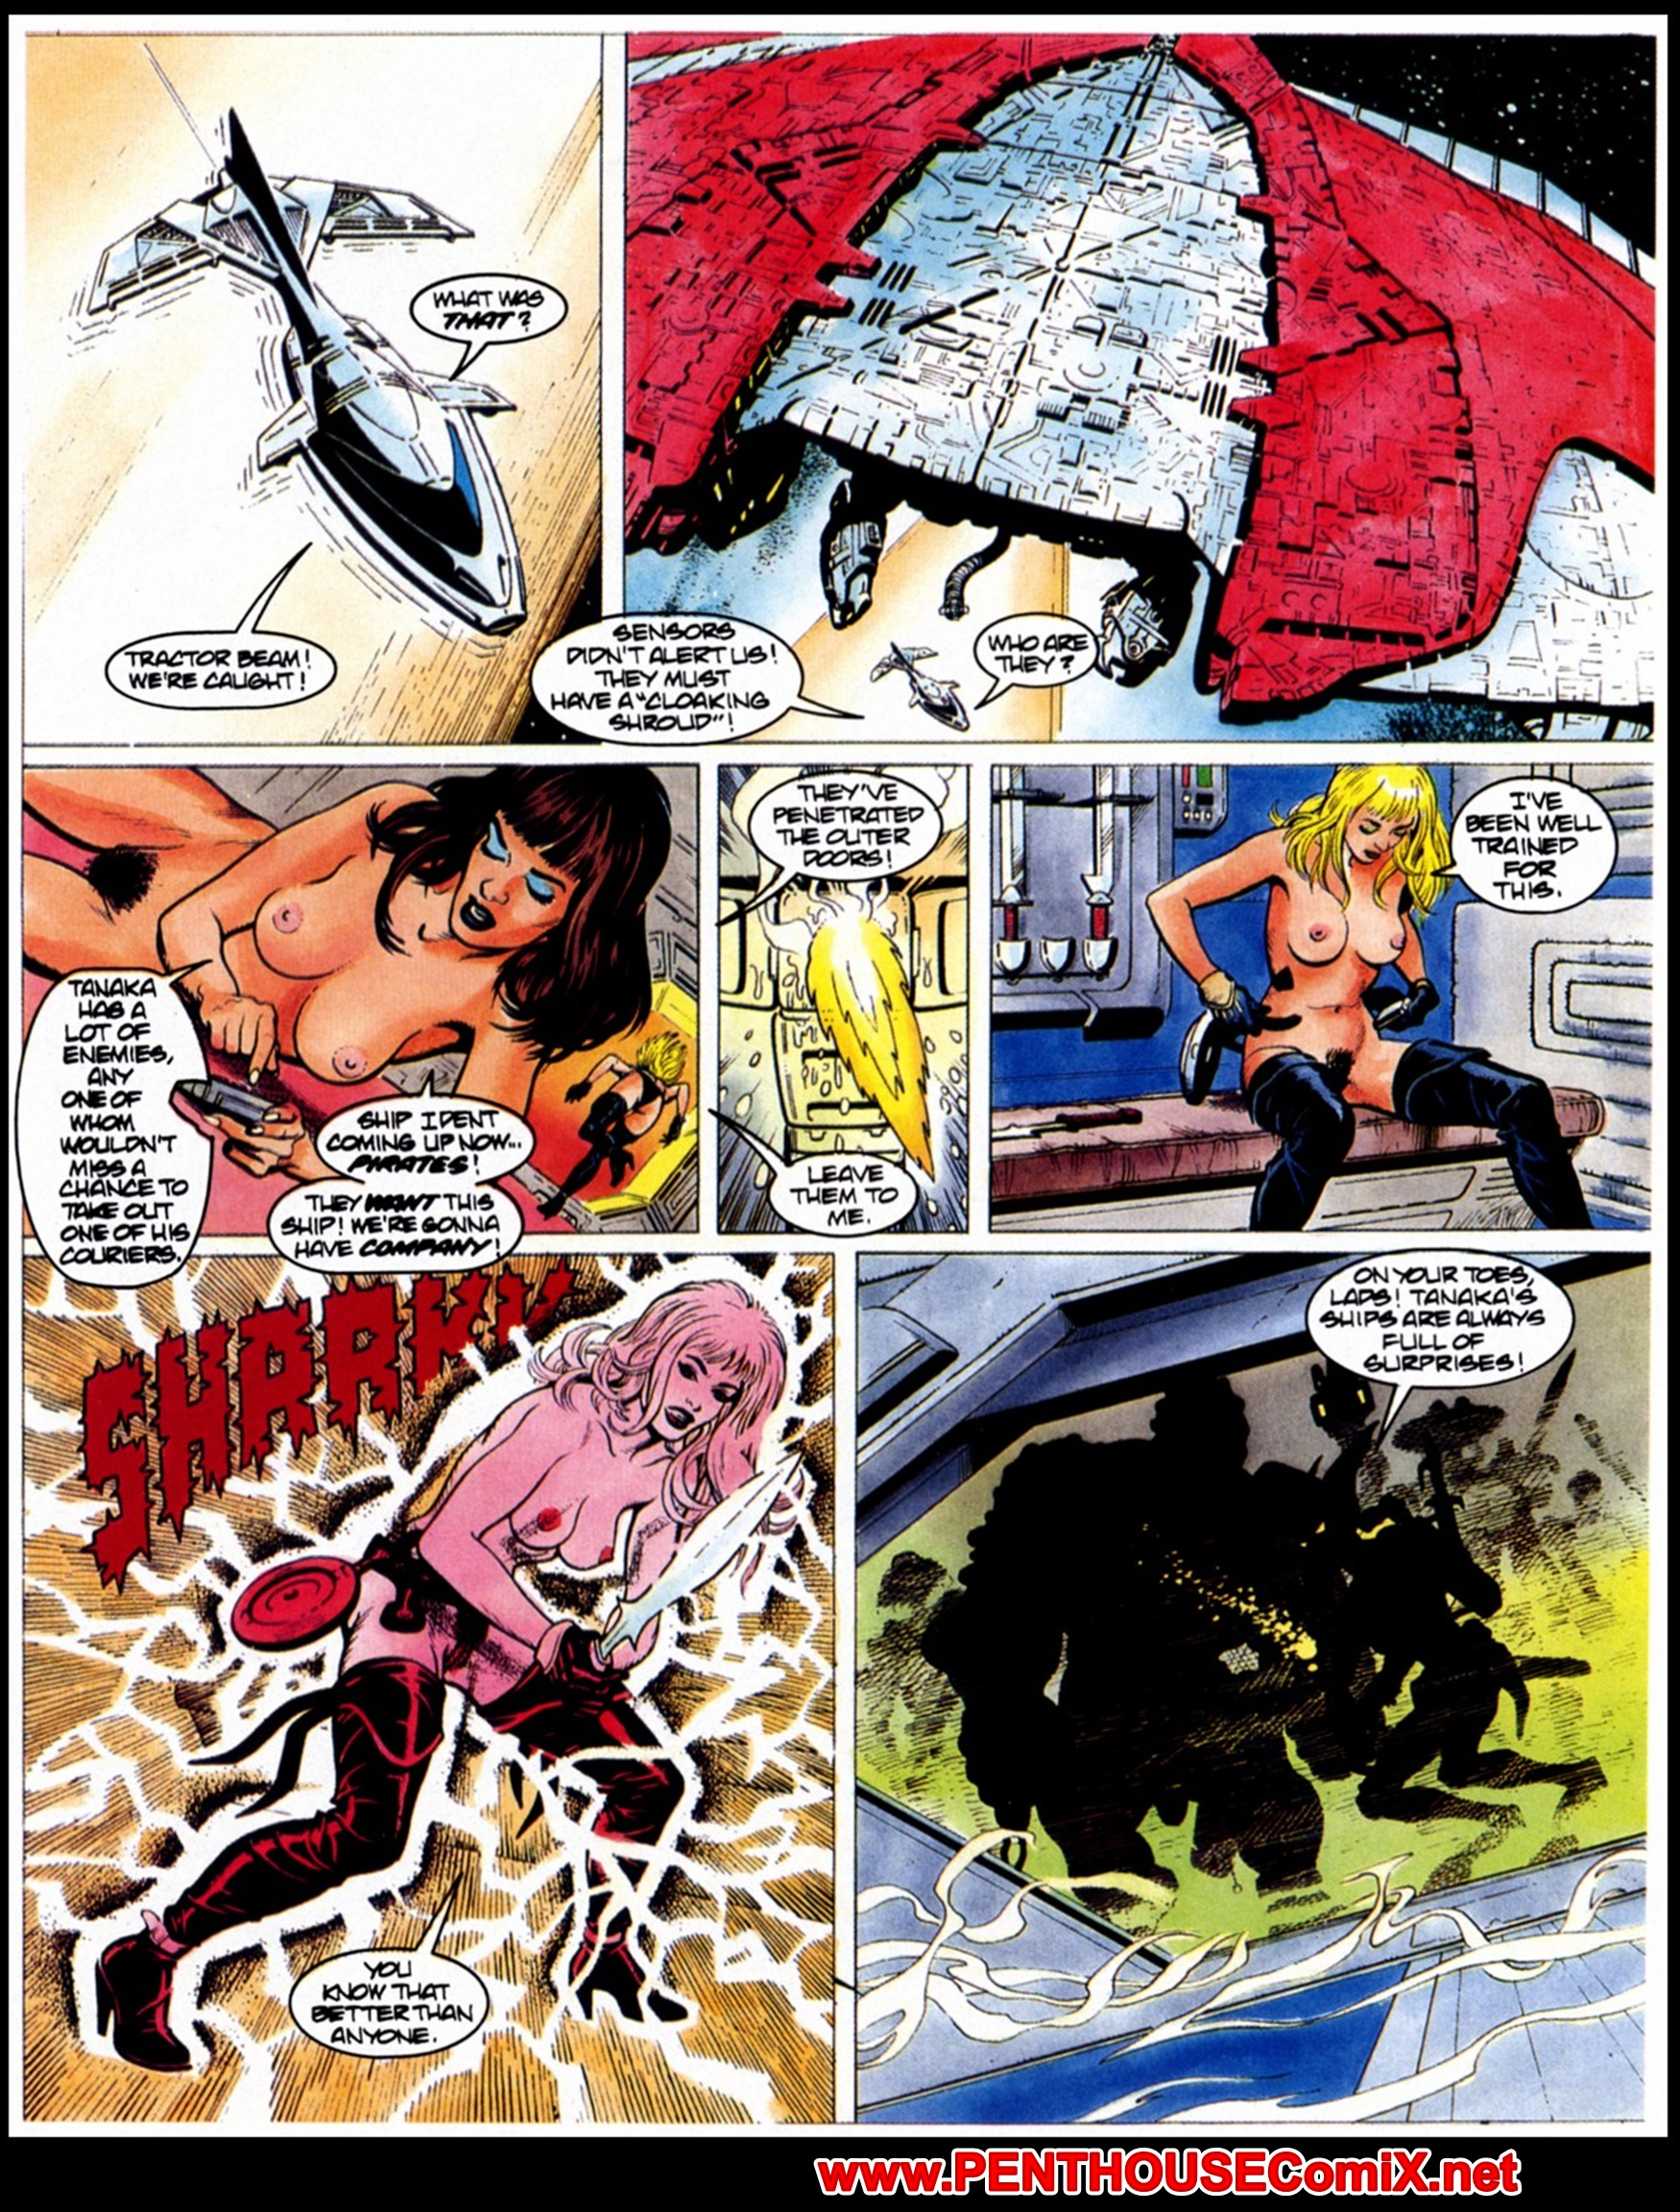 Lesbian Sci Fi Yuri Hentai Babes Attacked by Horny Porn Pirates!